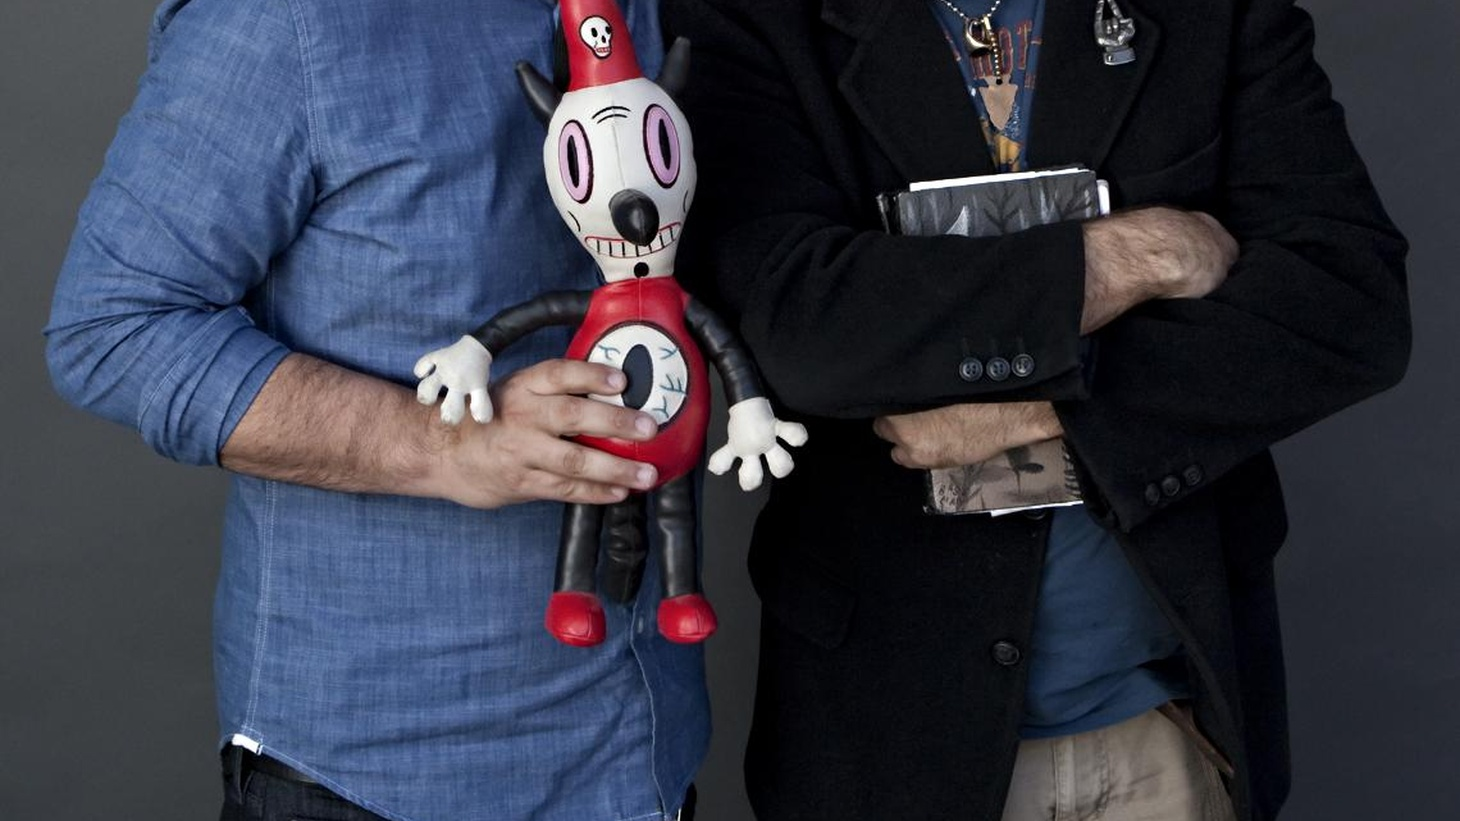 Artist, illustrator, animator, and toy designer Gary Baseman believes strongly that art isn't precious, it's magical.